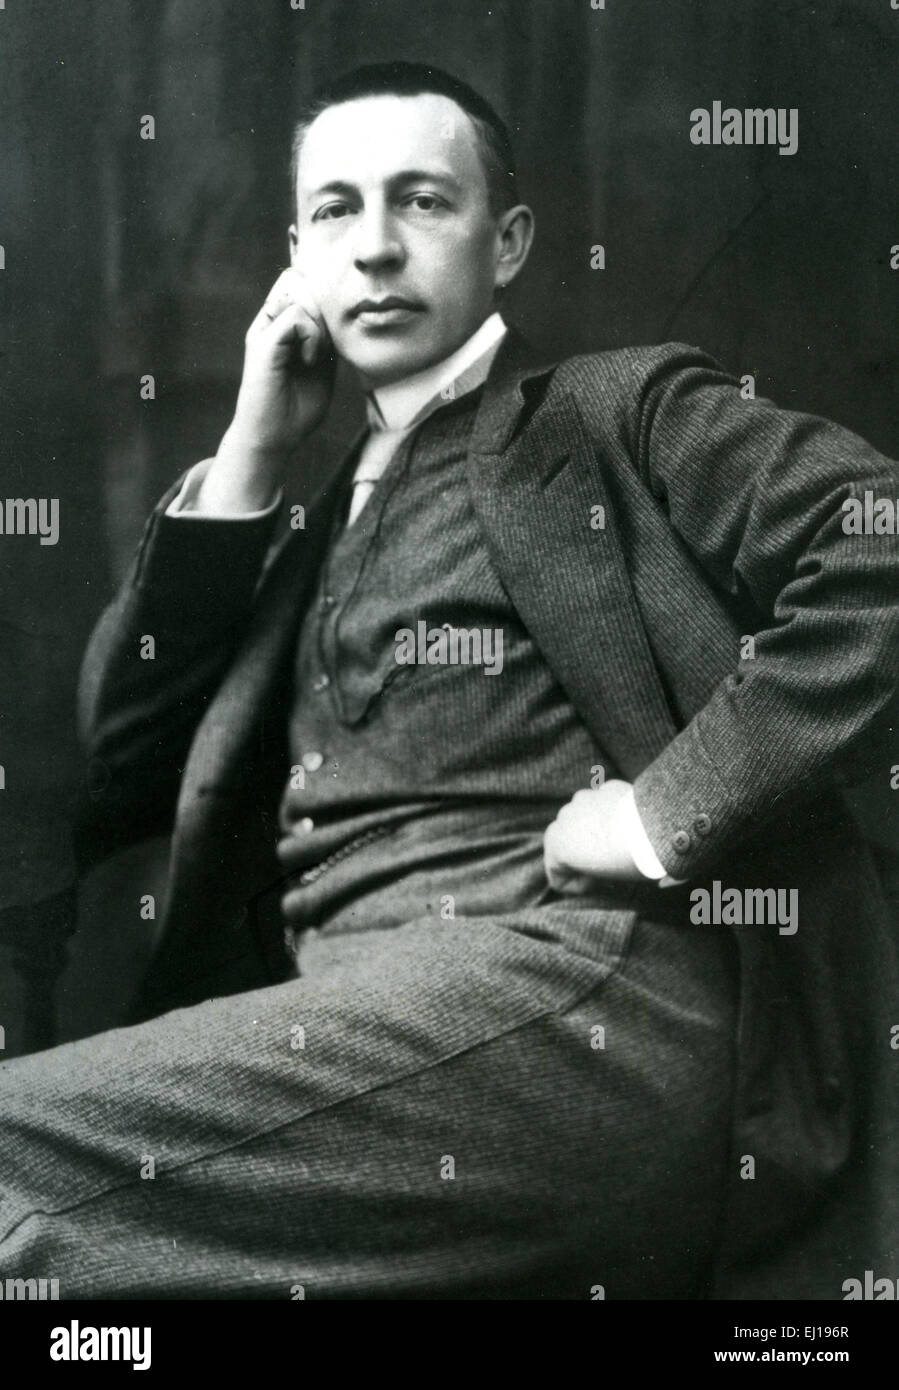 SERGEI RACHMANINOFF (1873-1943) Russian composer about 1920 - Stock Image